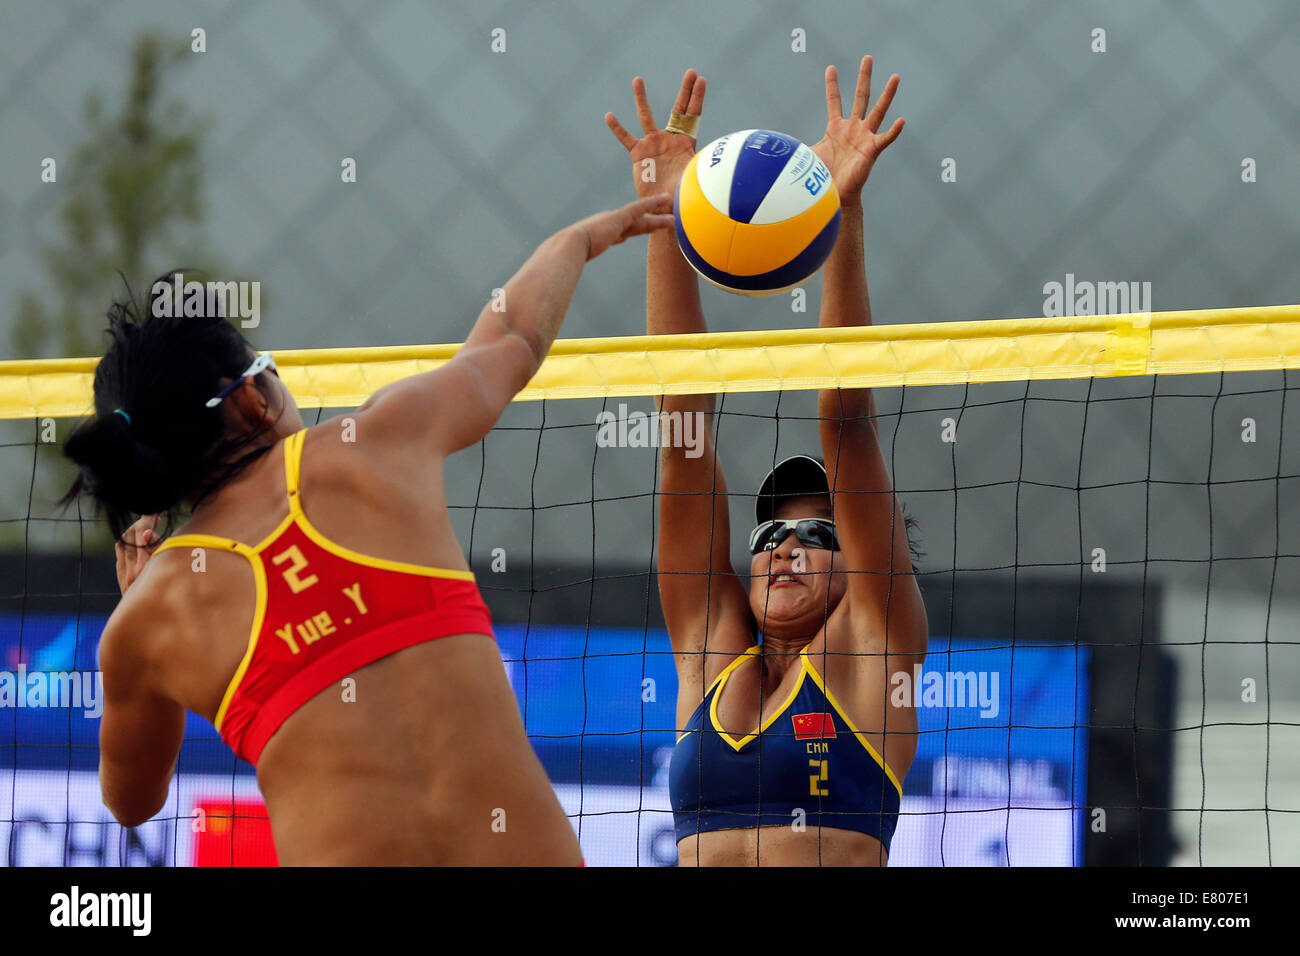 Incheon, South Korea. 27th Sep, 2014. Xia Xinyi (R) of China blocks the ball during the women's semifinal match - Stock Image